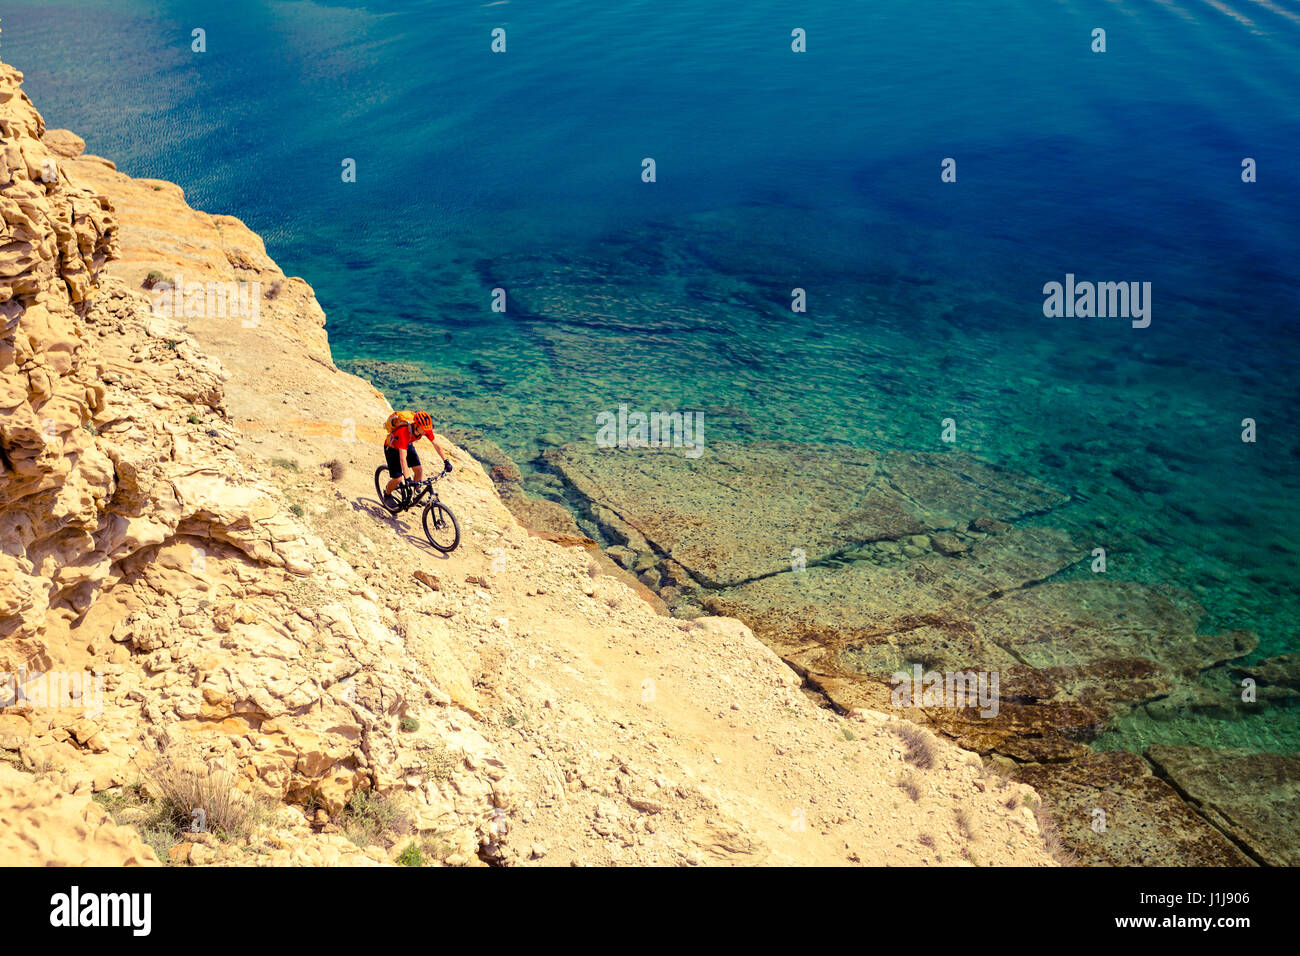 Mountain biker riding on bike in summer inspirational mountains and sea landscape. Man cycling MTB on enduro trail - Stock Image